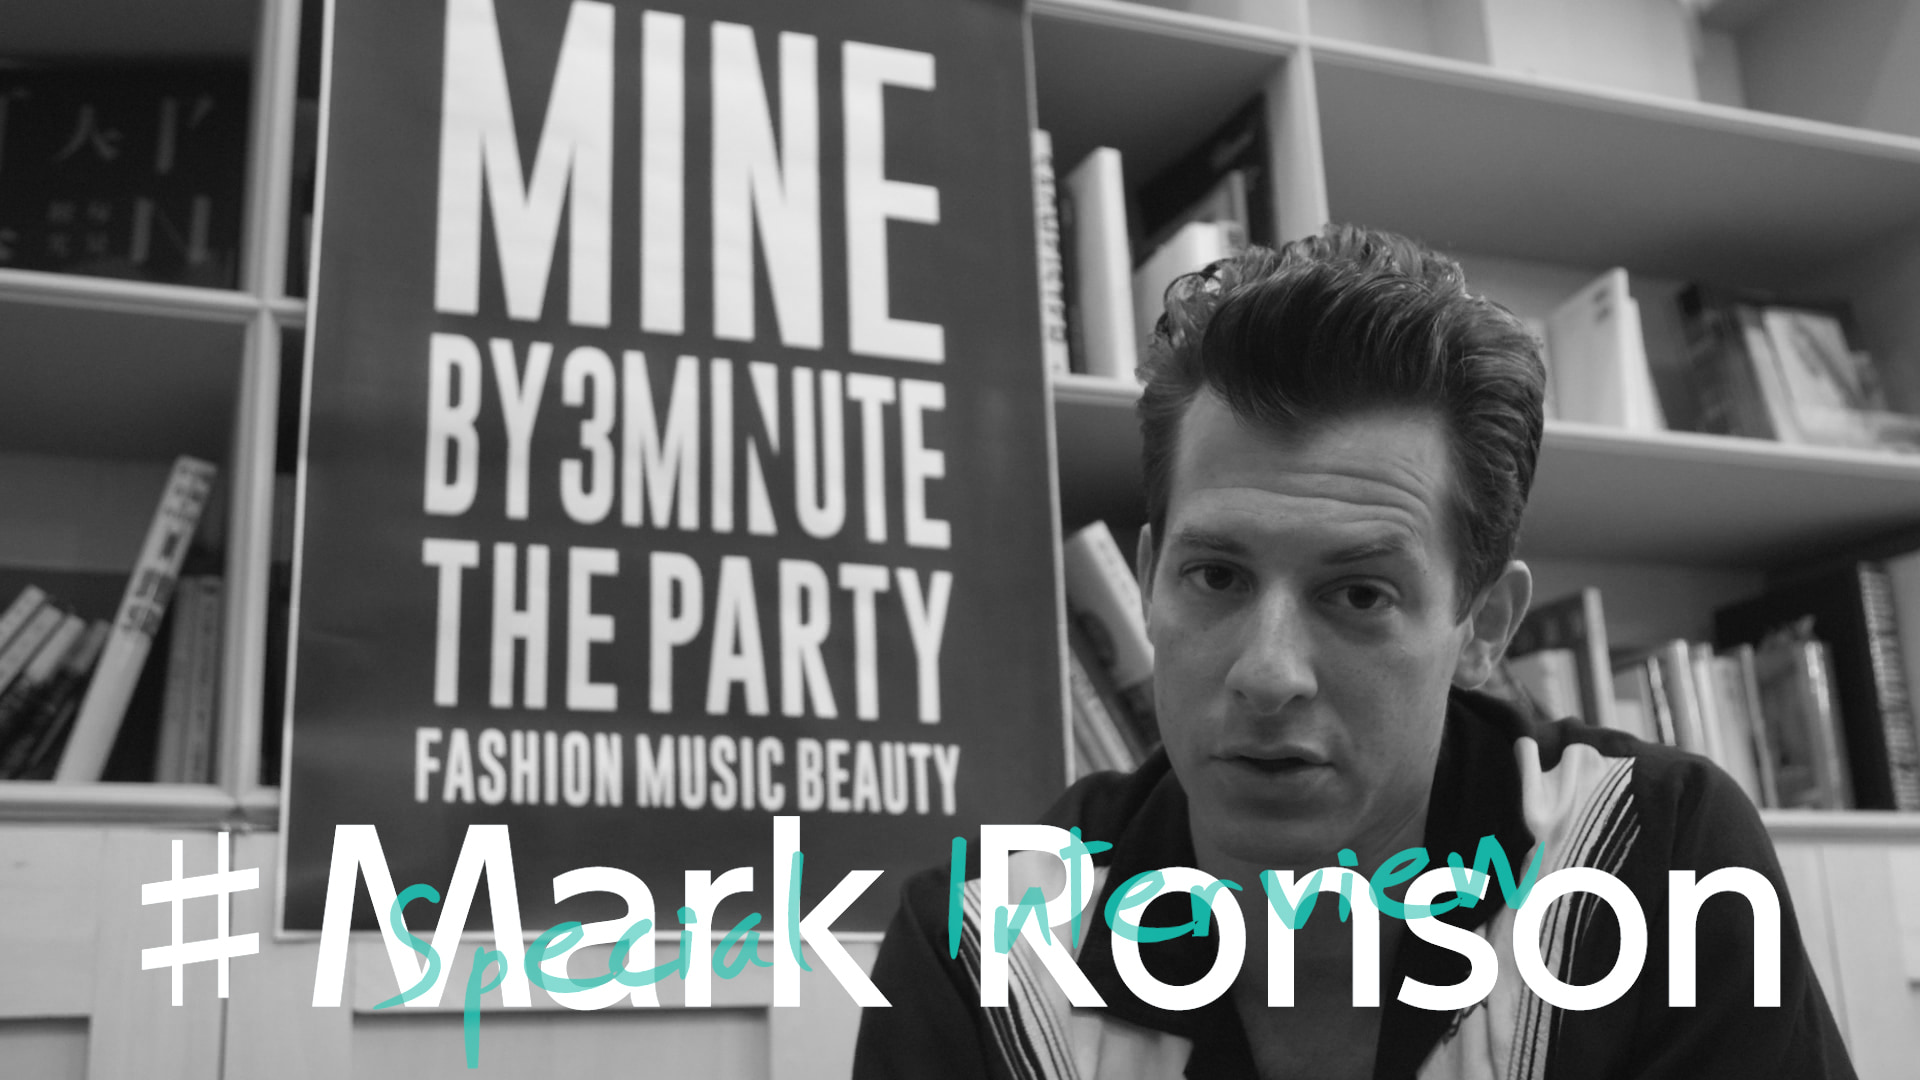 Mark Ronson -special interview- MINE BY 3M THE PARTY